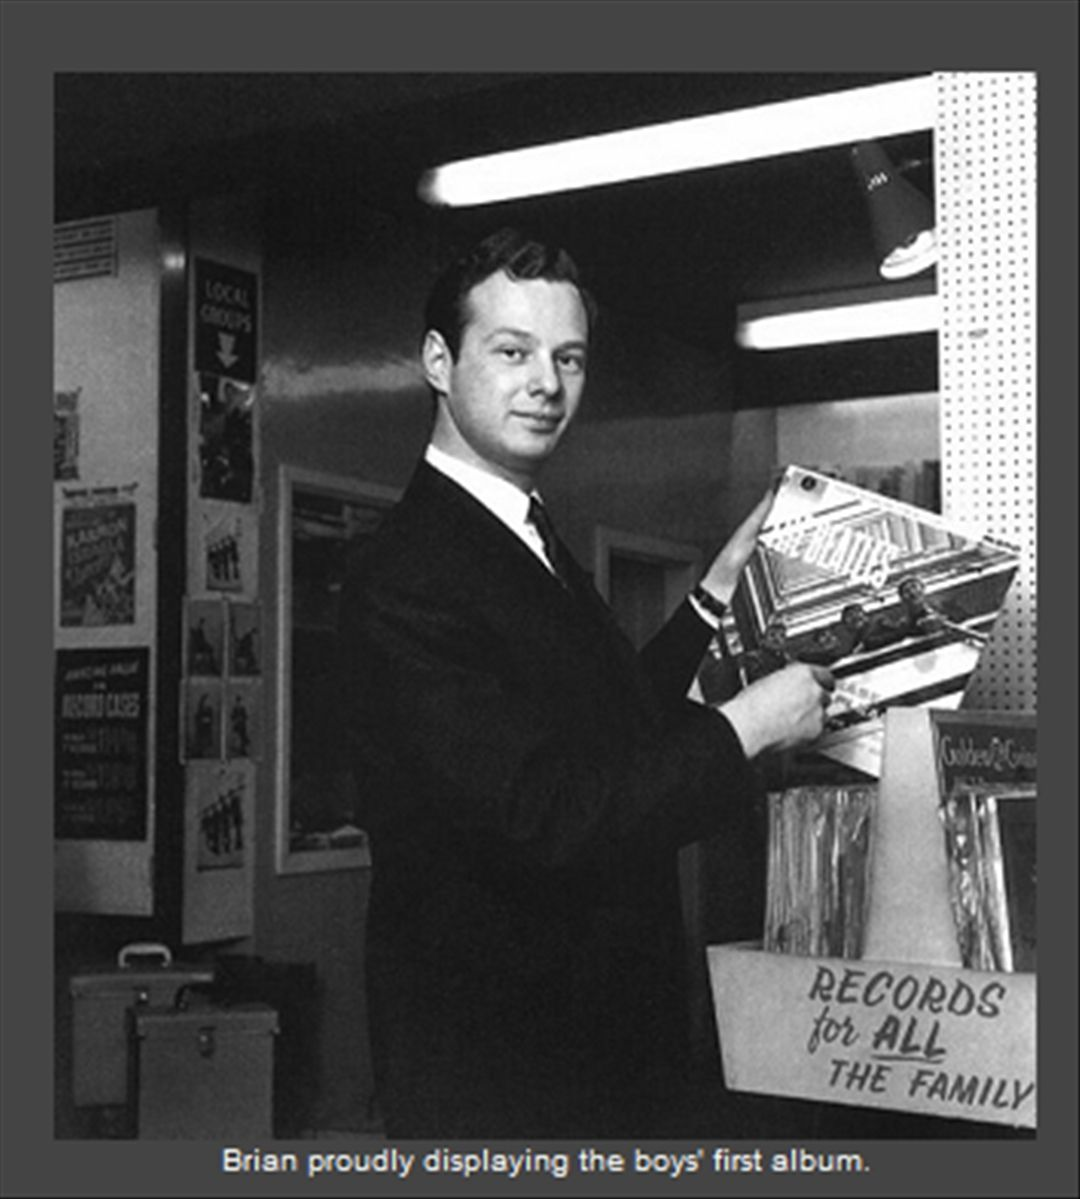 Brian Samuel Epstein (19 September 1934 – 27 August 1967) was an English music entrepreneur, best known for managing the Beatles.his death has never been clarified